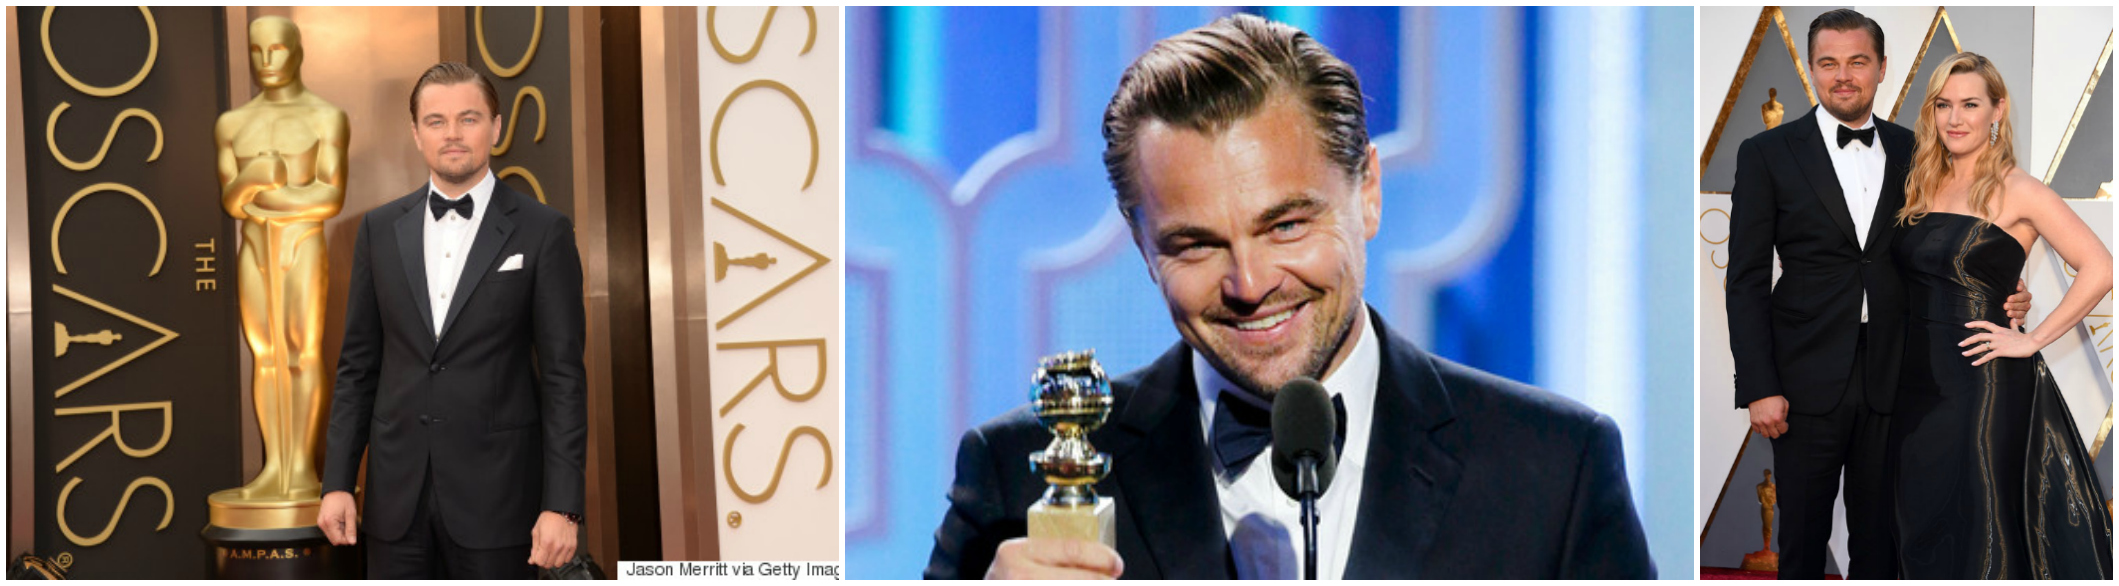 Leonardo DiCaprio Oscar Best Actor The Revenant 2016